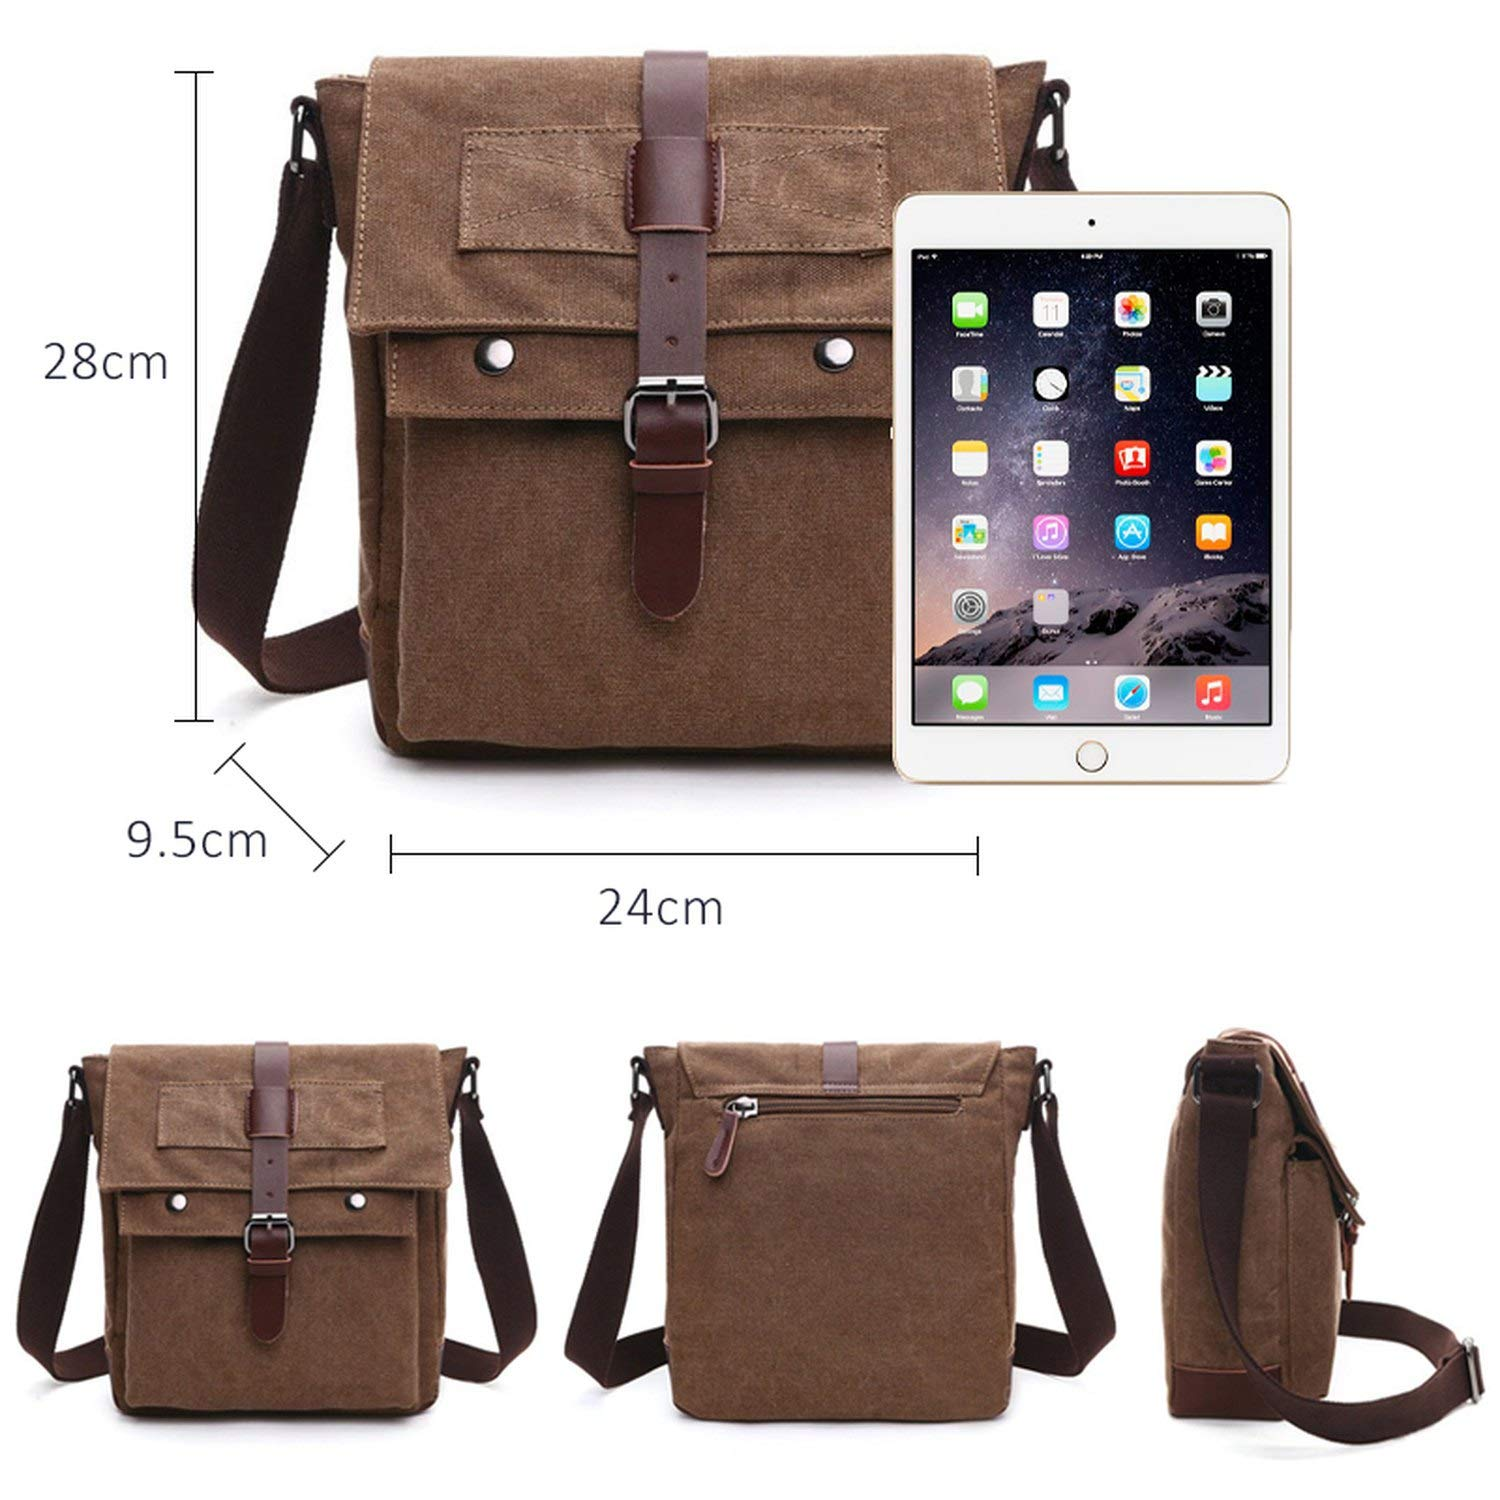 Business Messenger Bags For Men Student Canvas Crossbody Shoulder Pack Office Travel Bag,Coffee,Small